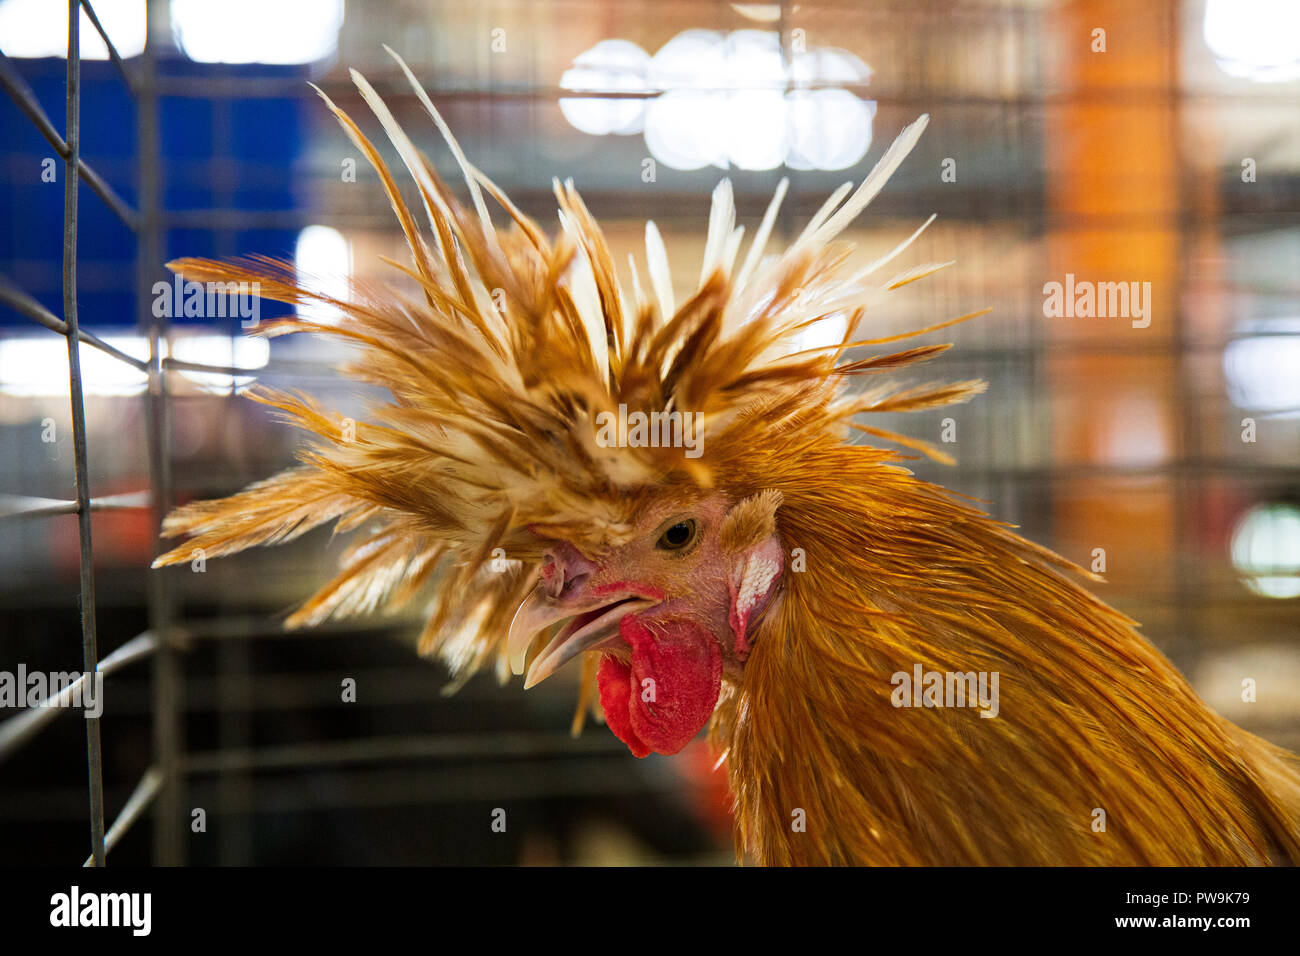 The Poultry Barn at the Great New York State Fair, August 27, 2015. - Stock Image